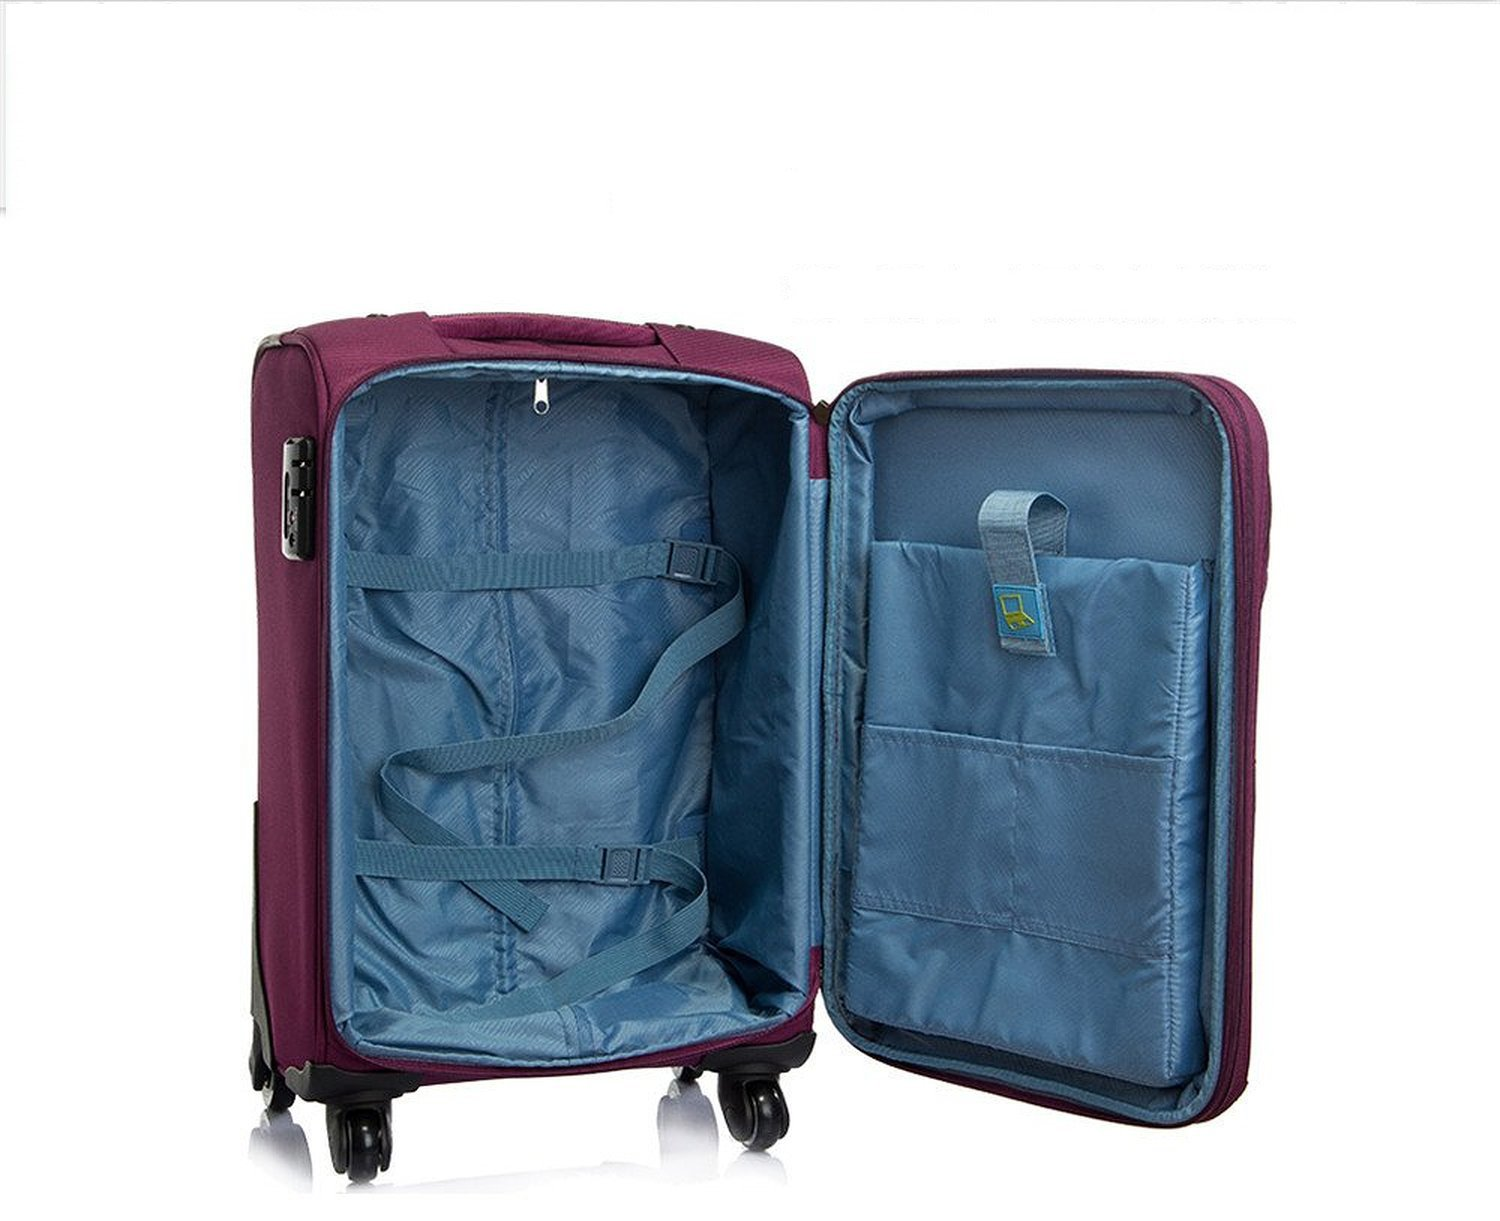 YD Luggage Set Trolley Case-Waterproof Luggage Box Universal Wheel Suitcase Student Password Box Cloth Box Large Capacity Trolley Case 4 Colors 5 Sizes Optional ///&